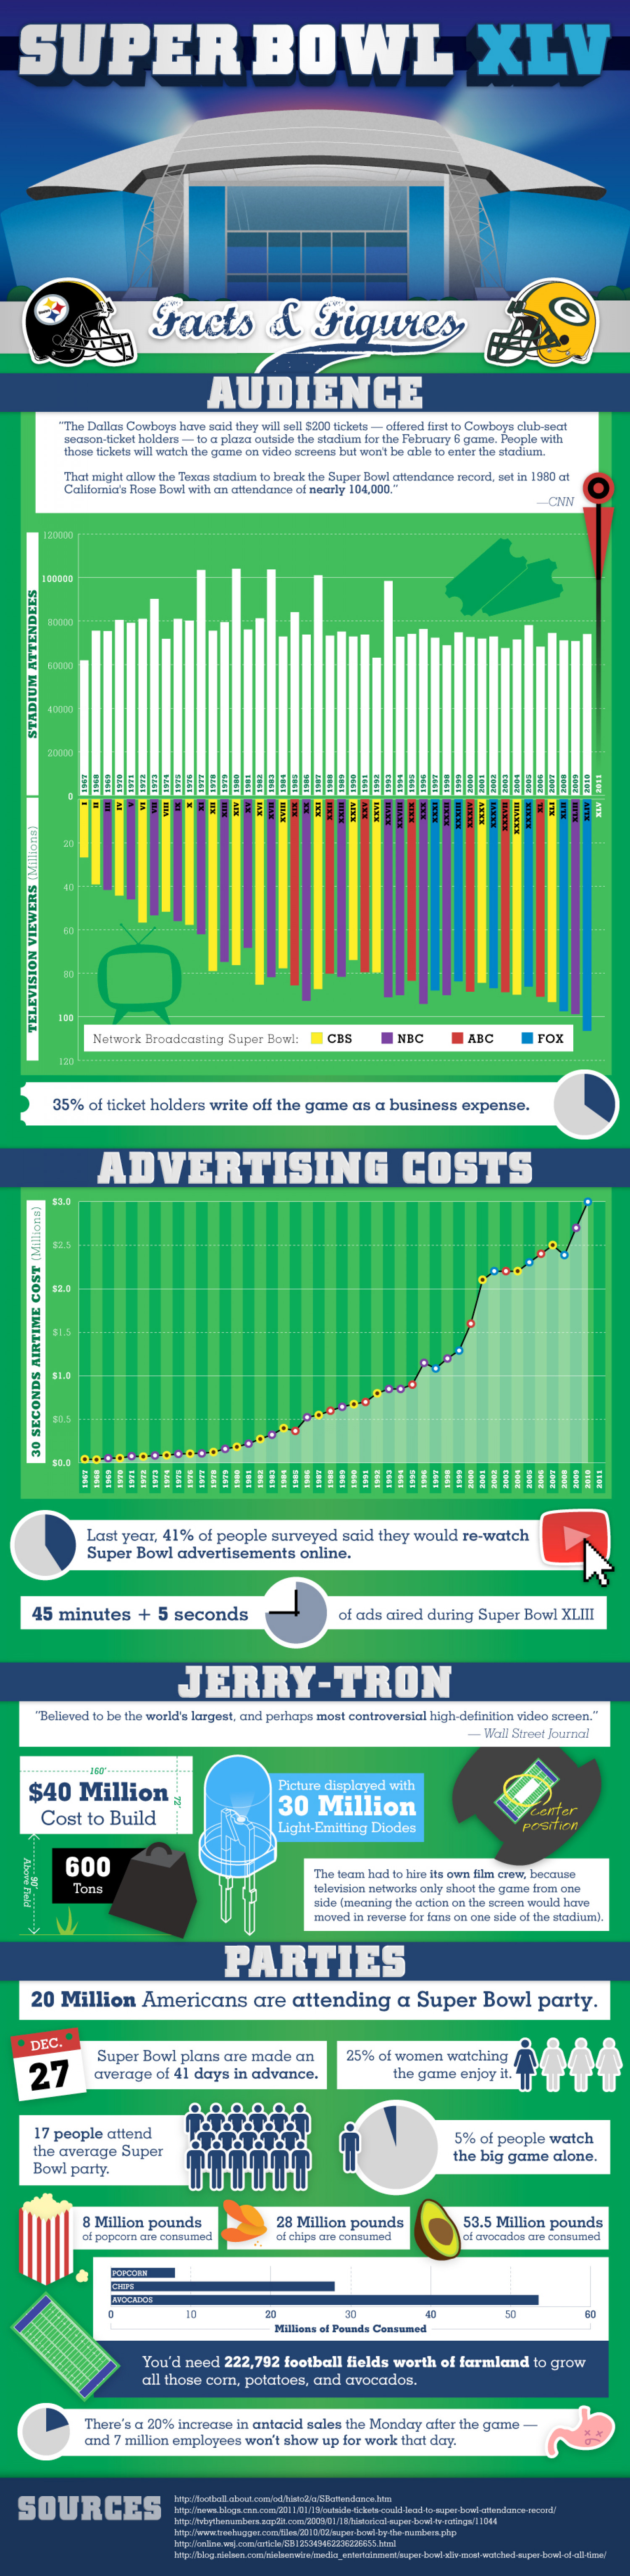 Superbowl XLV Facts and Figures  Infographic